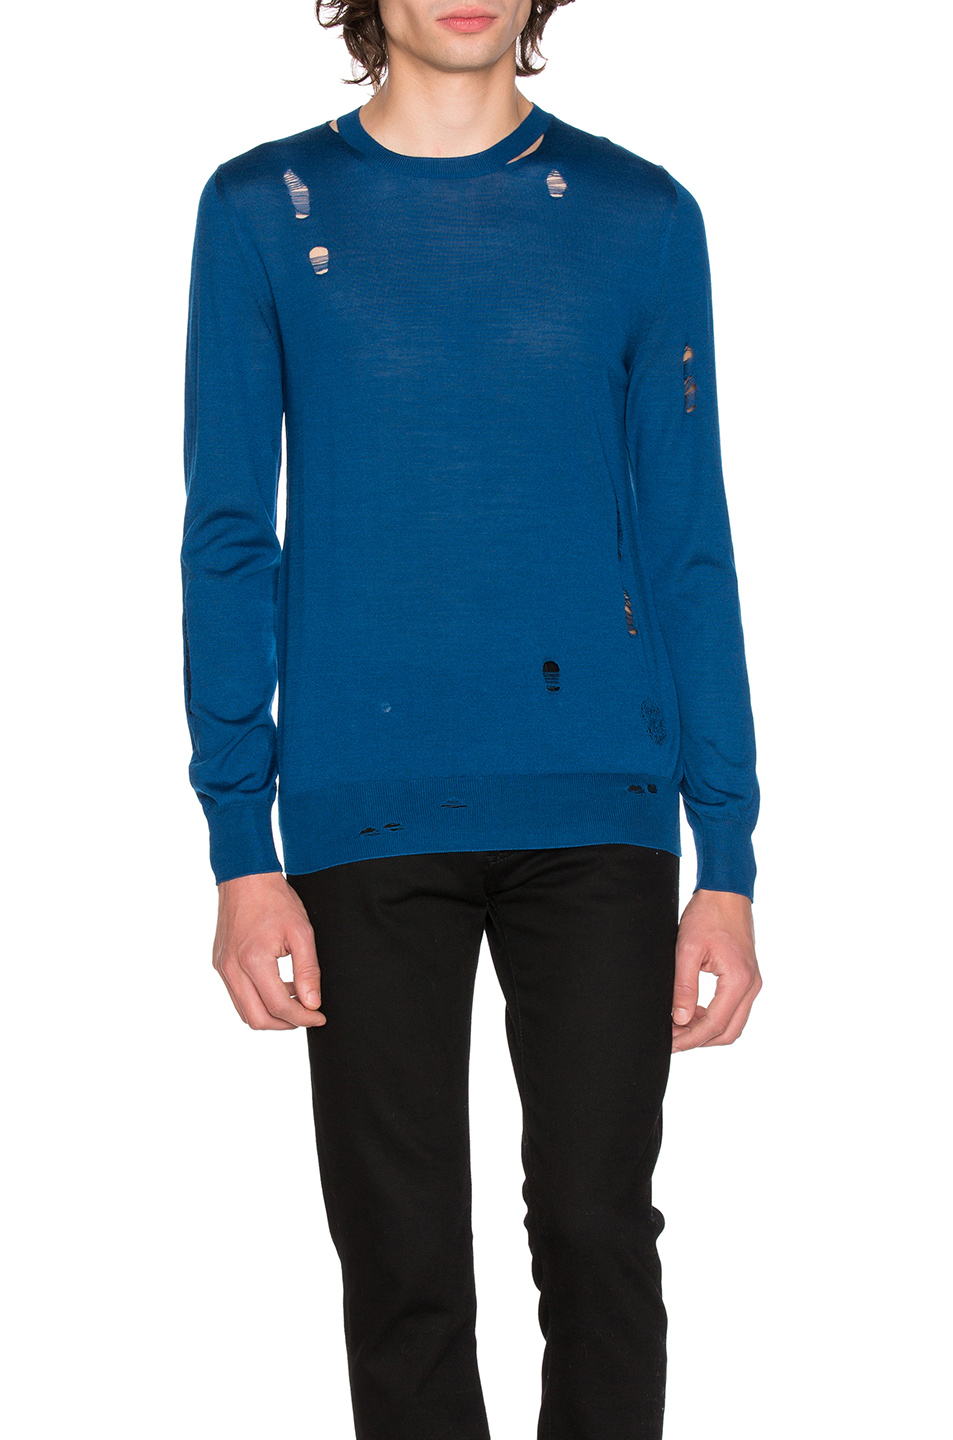 Alexander McQueen Long Sleeve Crew Neck Sweater in Blue